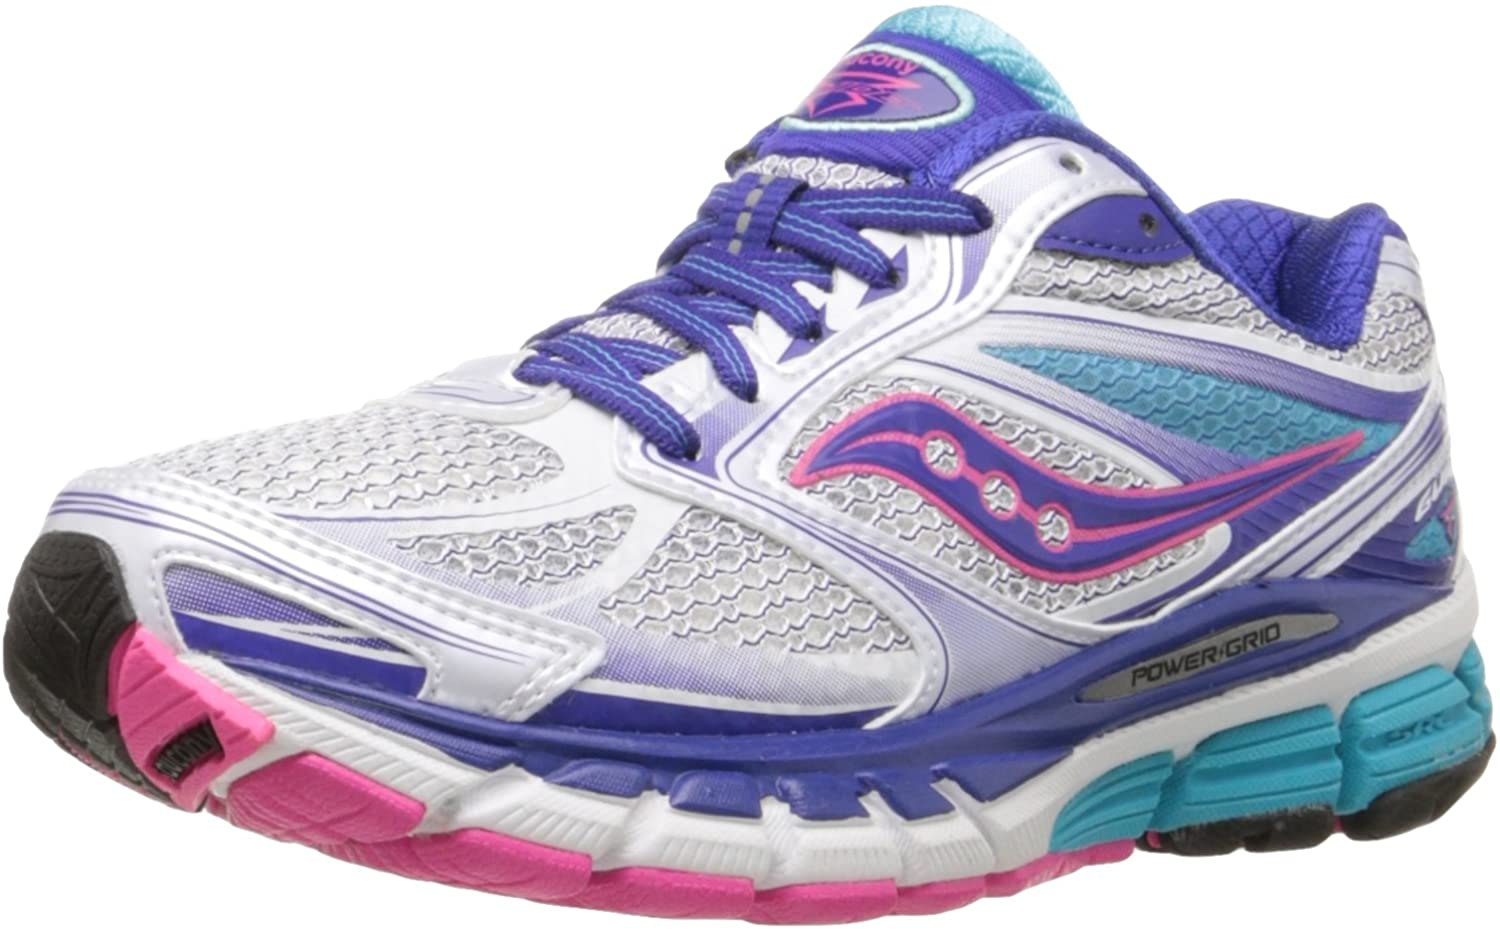 saucony women's shoes